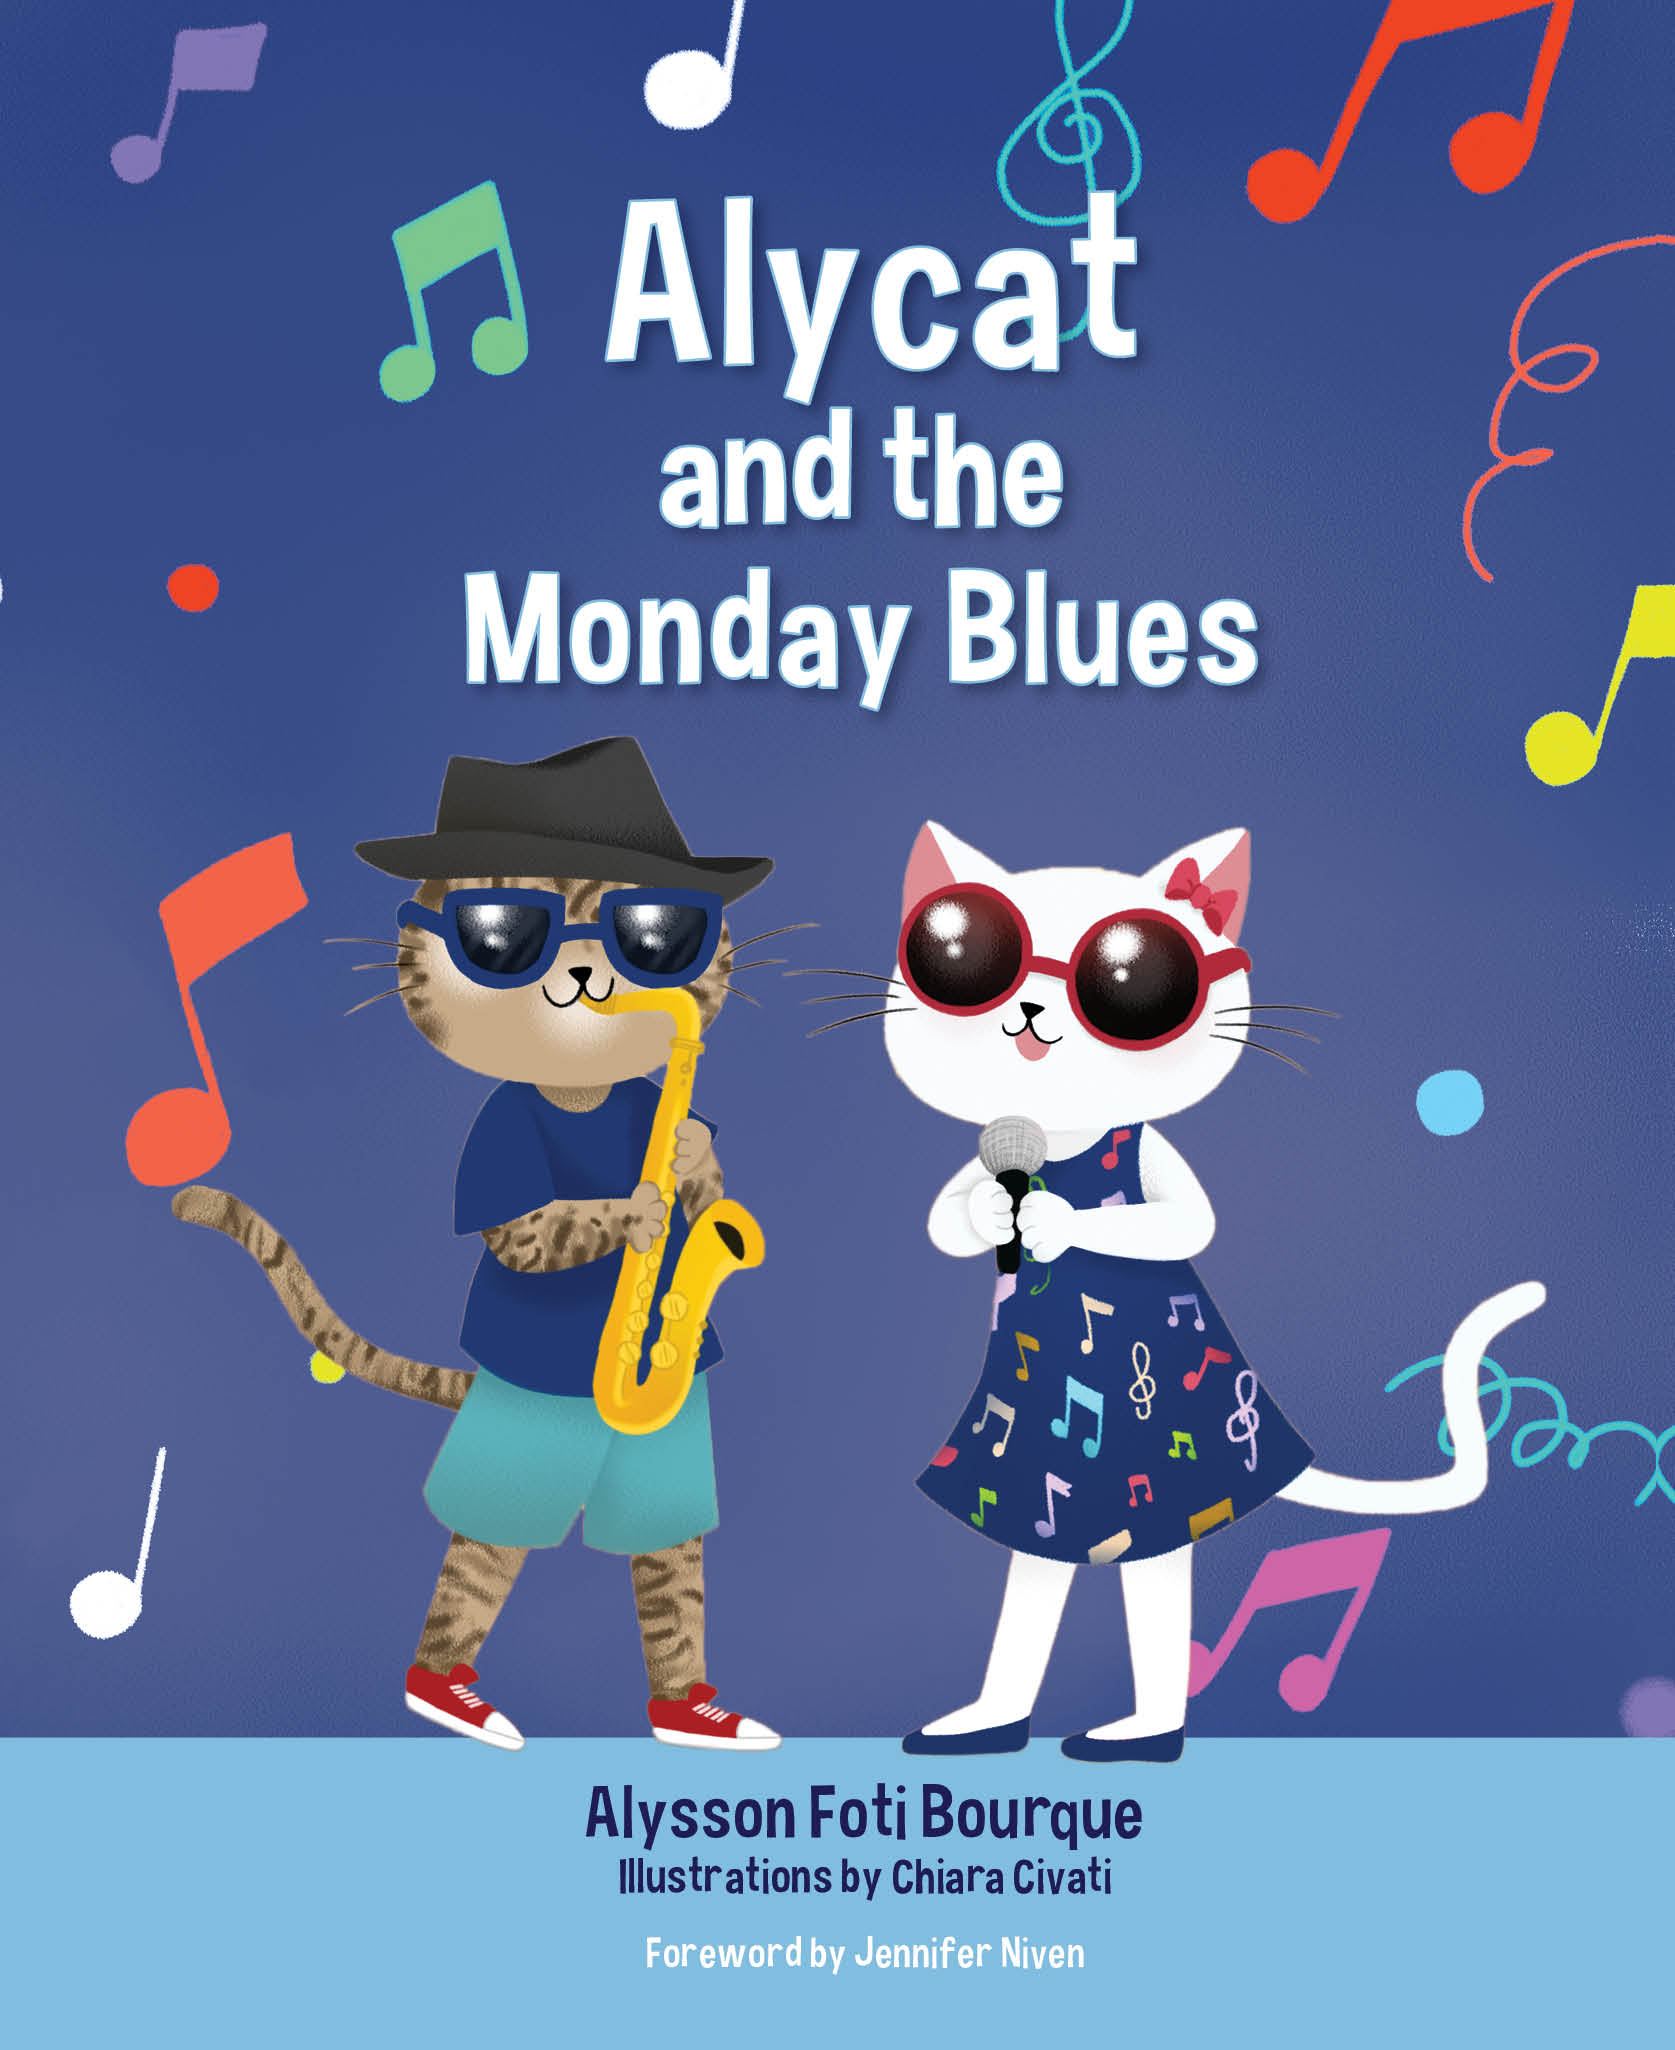 https://mascotbooks.com/wp-content/uploads/2017/07/AlycatandtheMondayBlues_Amazon.jpg